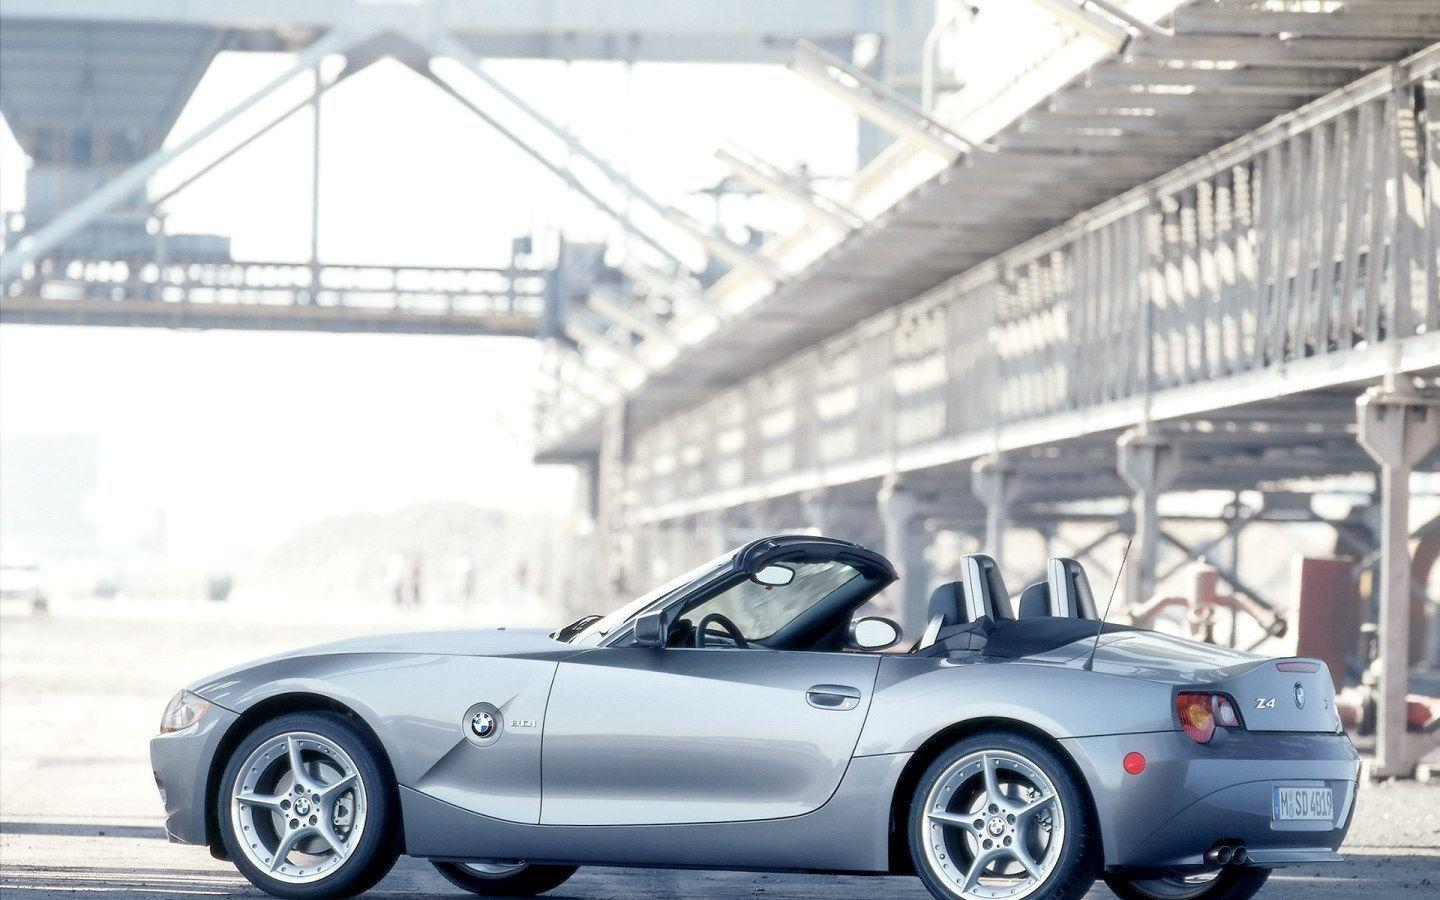 BMW Z4 Roadster Wallpaper 03 - 1440x900